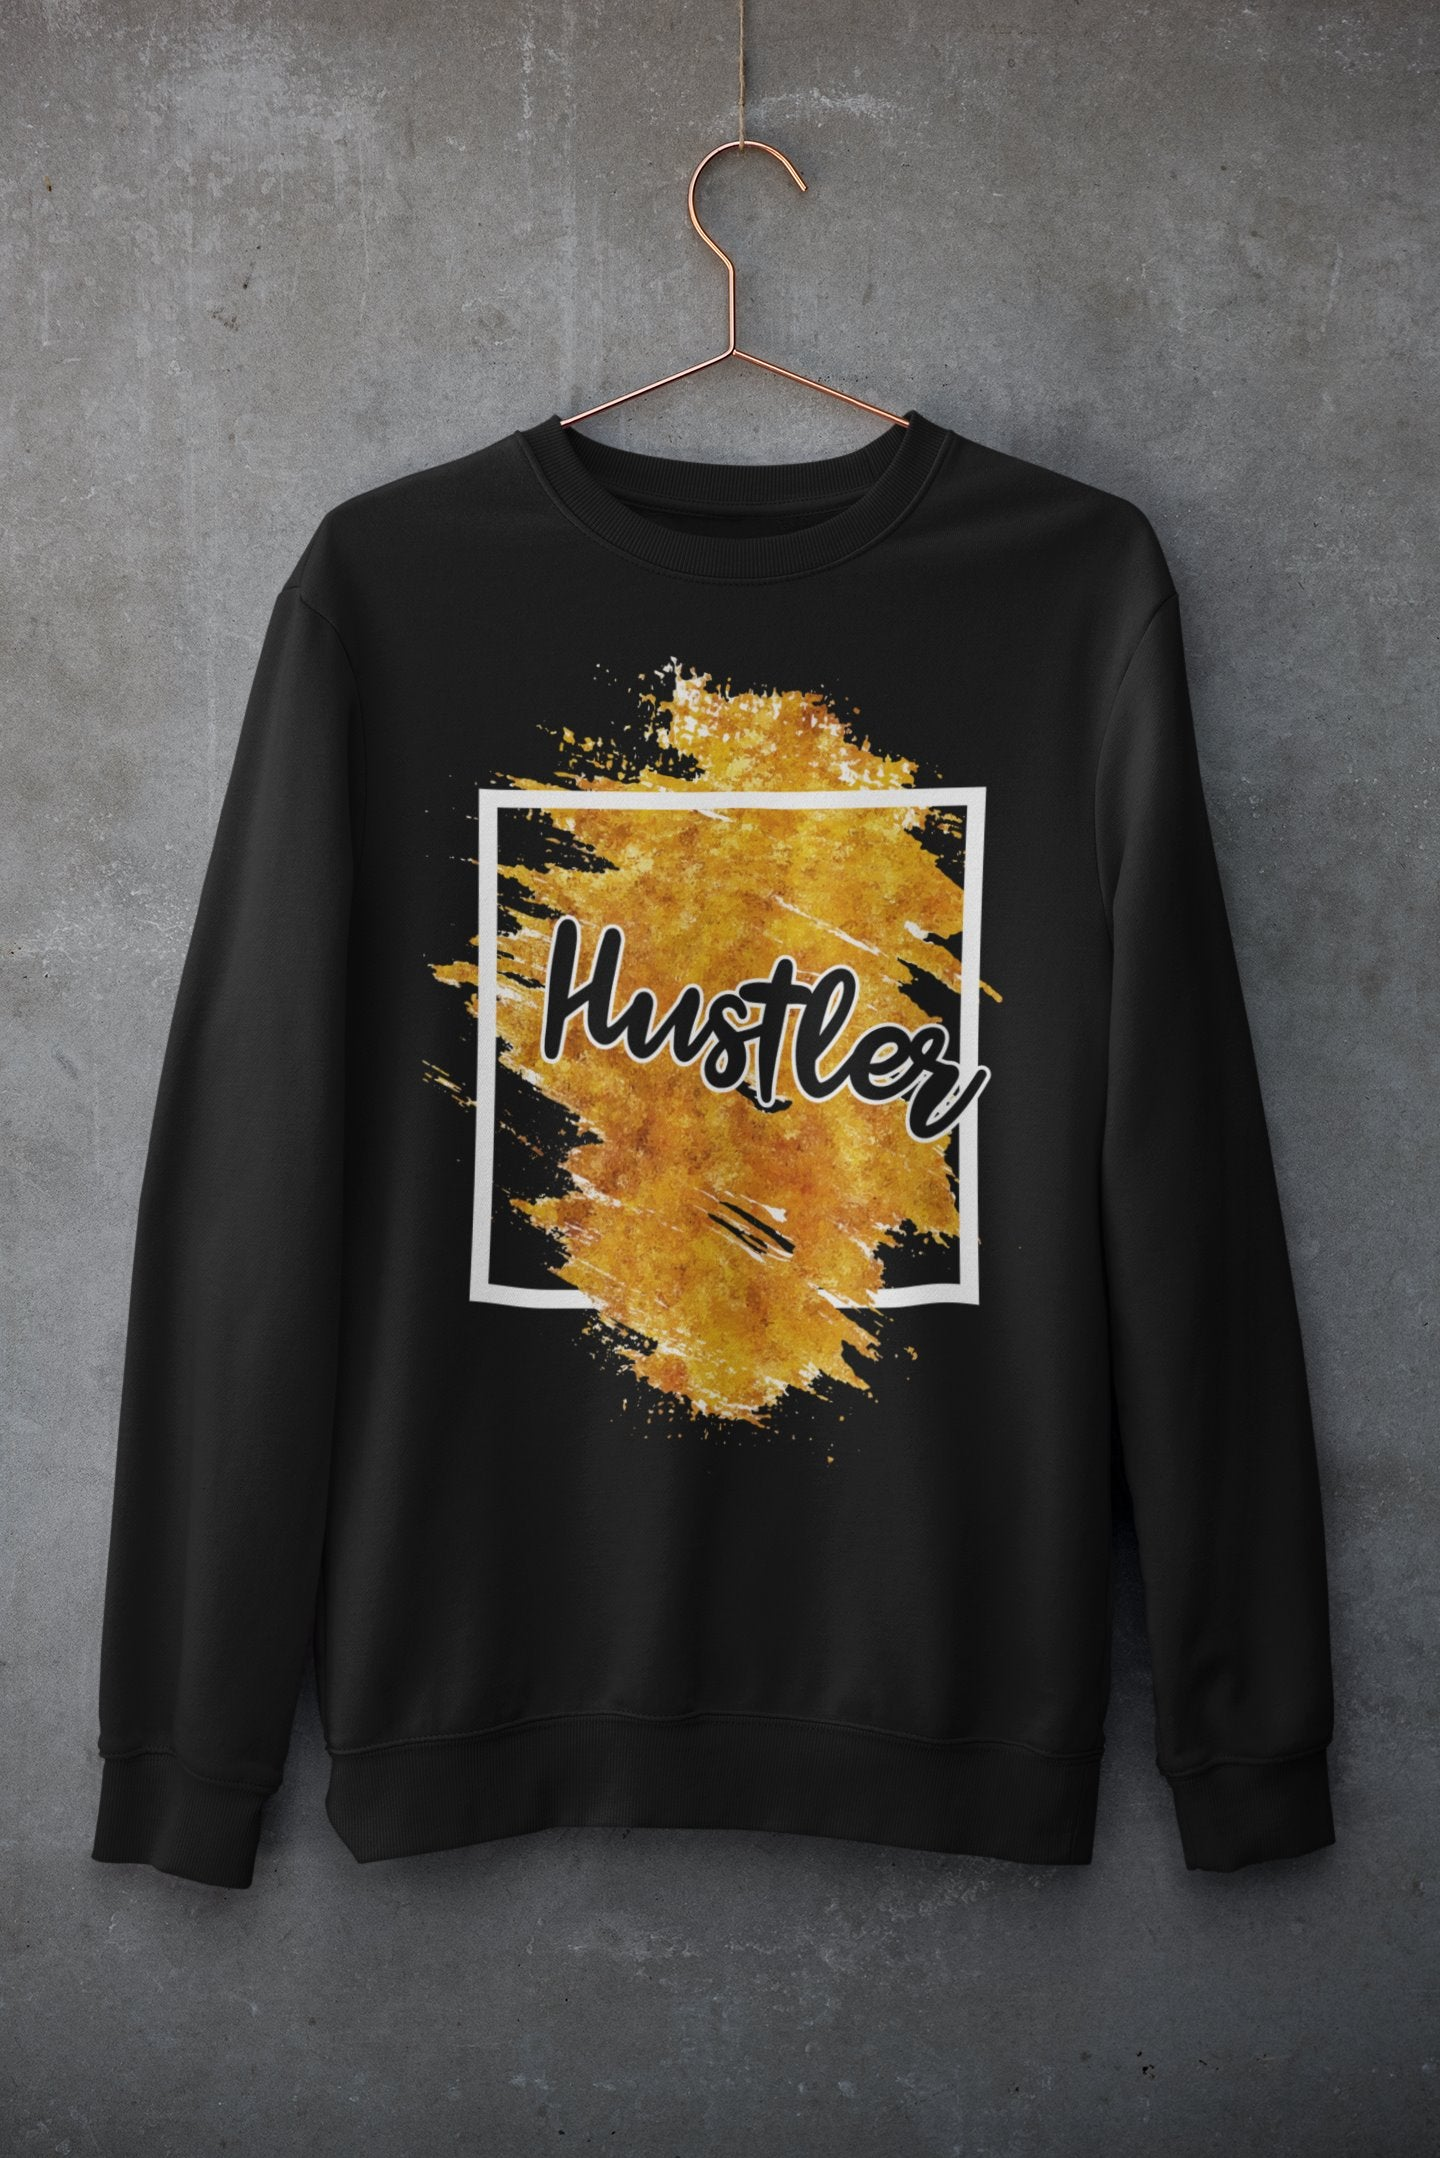 "Womens Oversize Sweatshirt ""Hustler"" Orange Edition BlackS - Mperior: The Store For Entrepreneurs, Hustlers and Achievers"